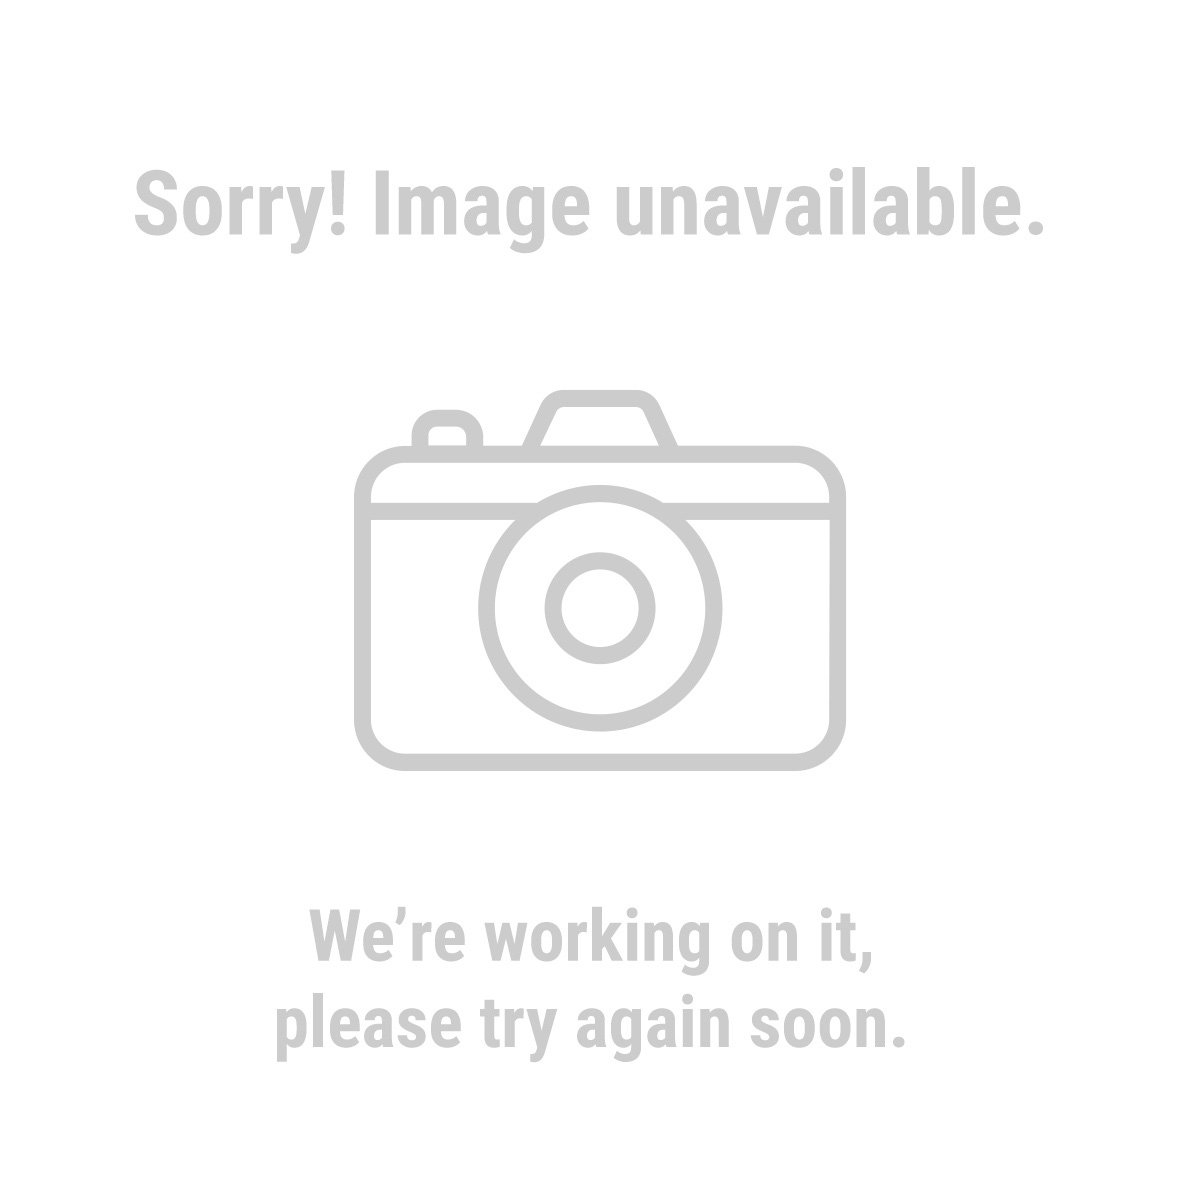 Central Forge 68979 3-In-1 Heavy Duty Tile Cutter